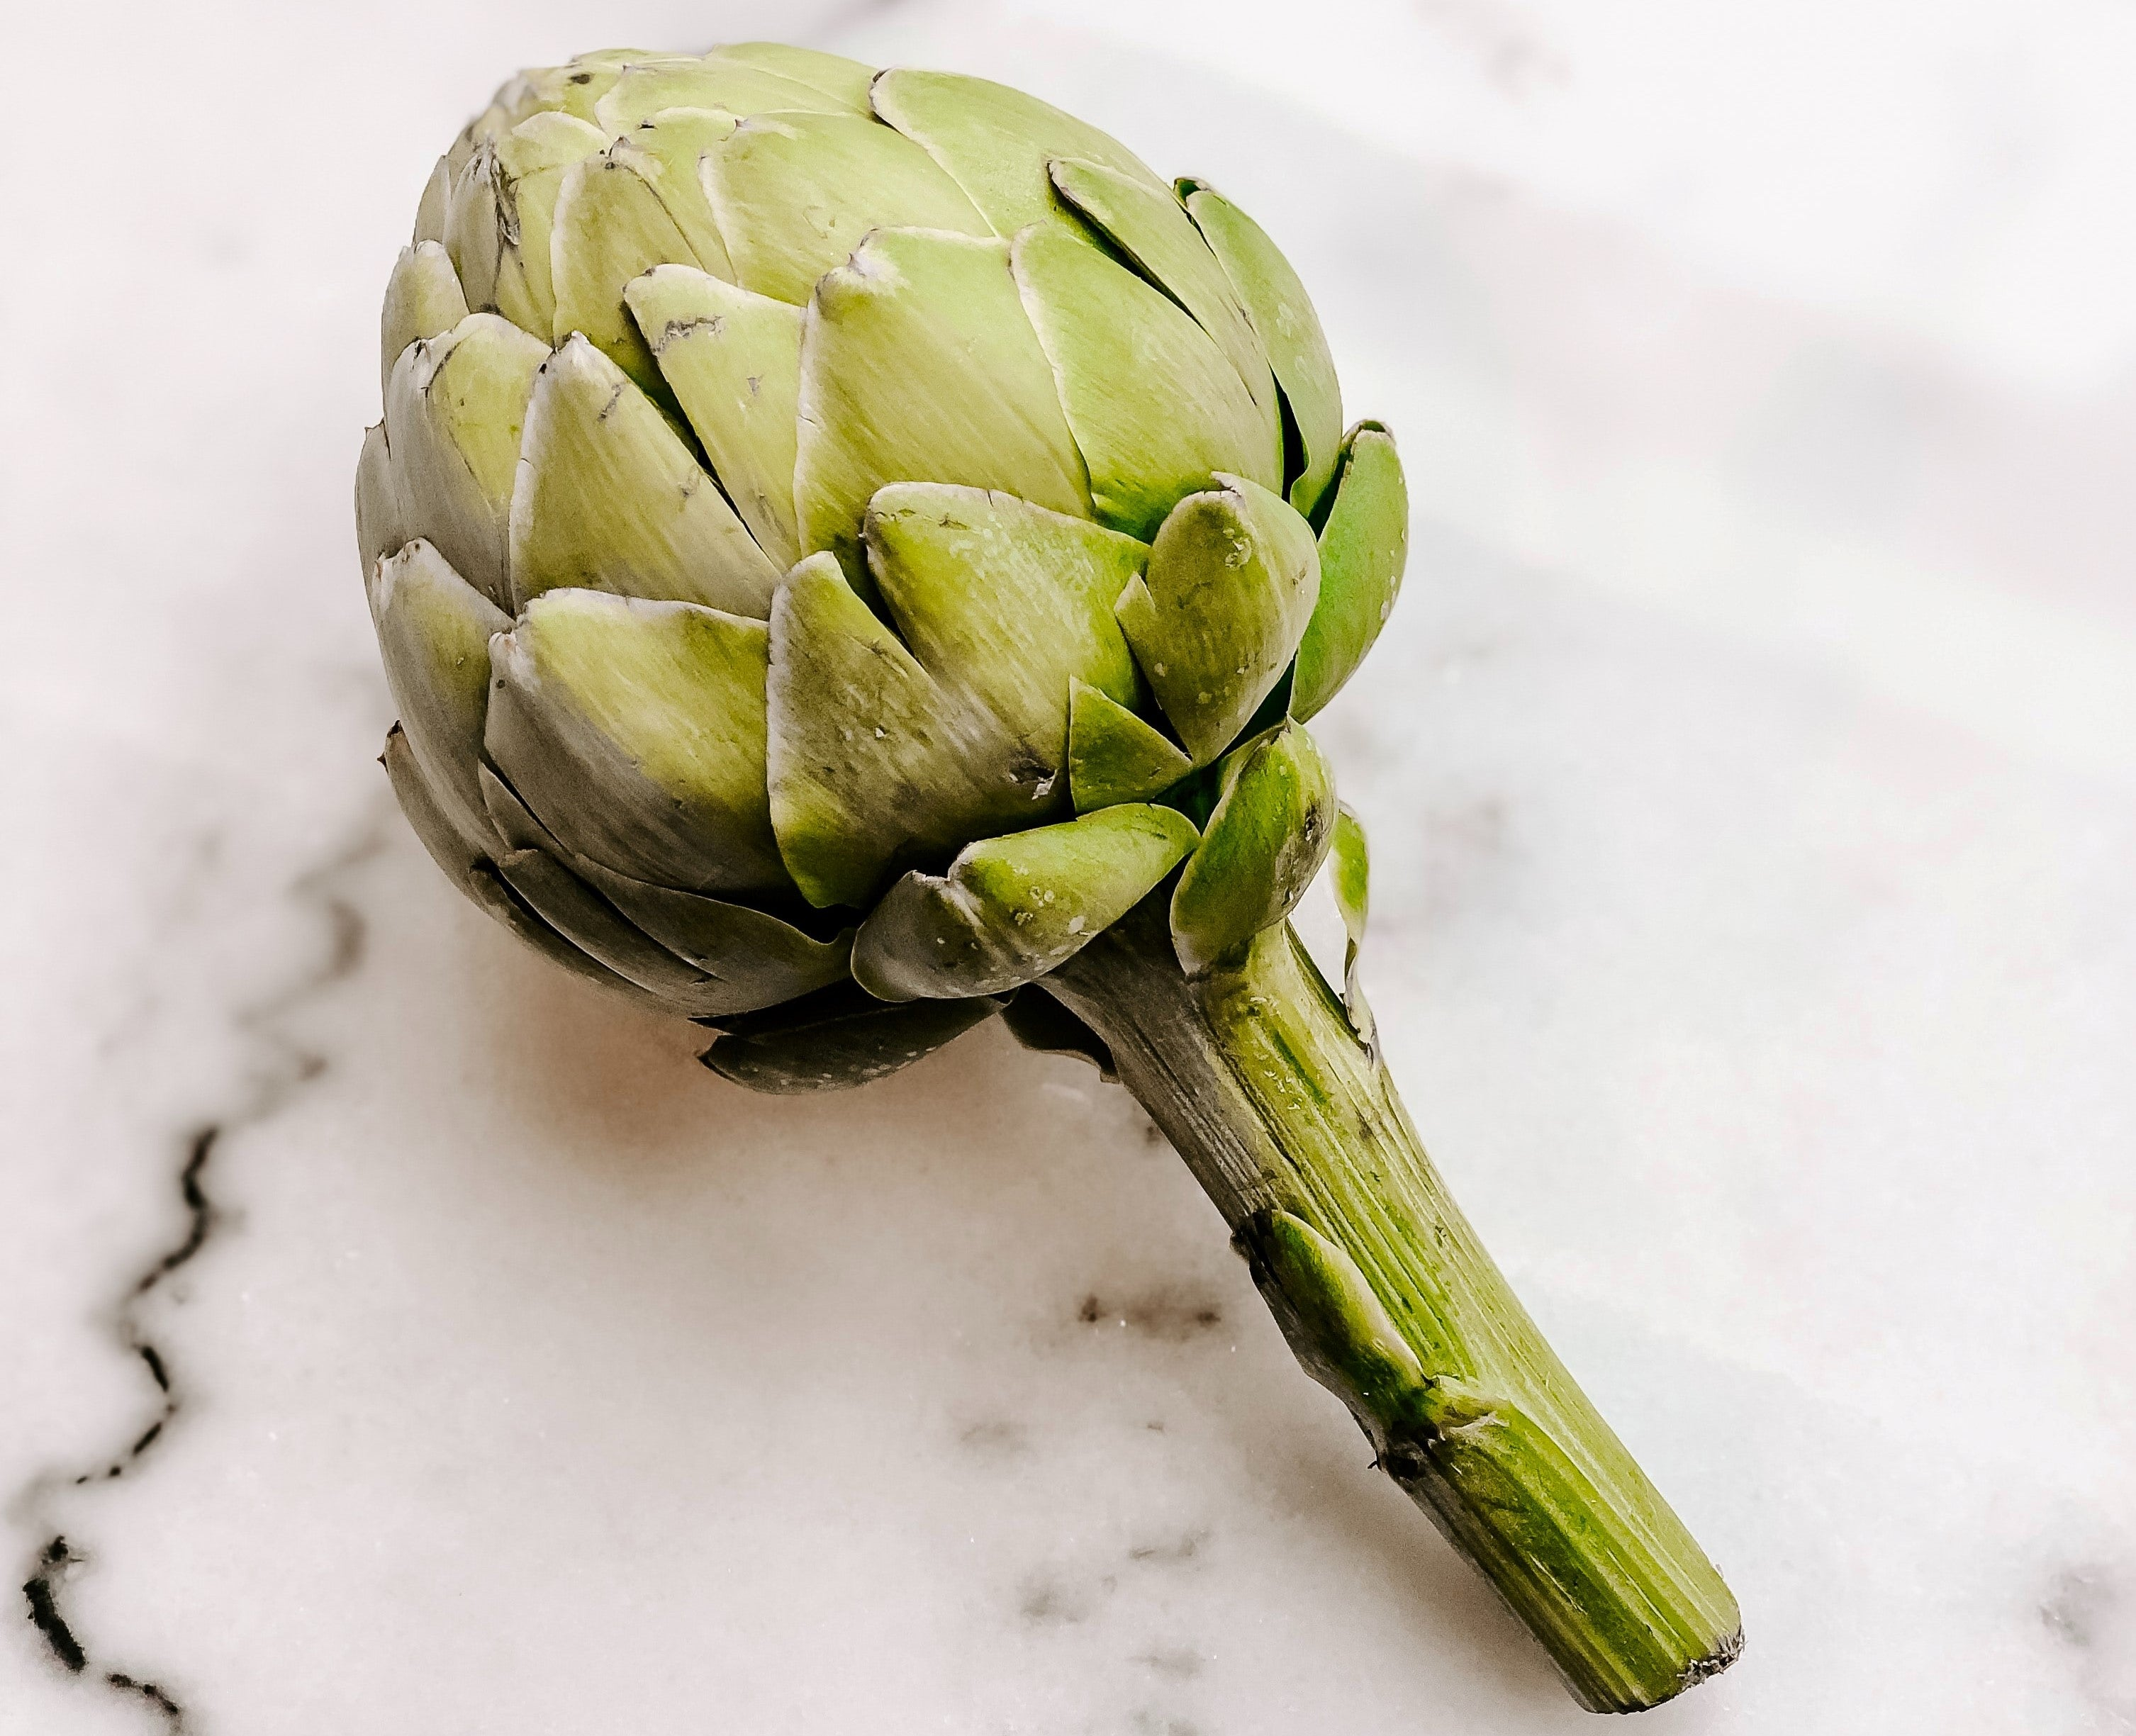 artichoke-reduces-inflammation